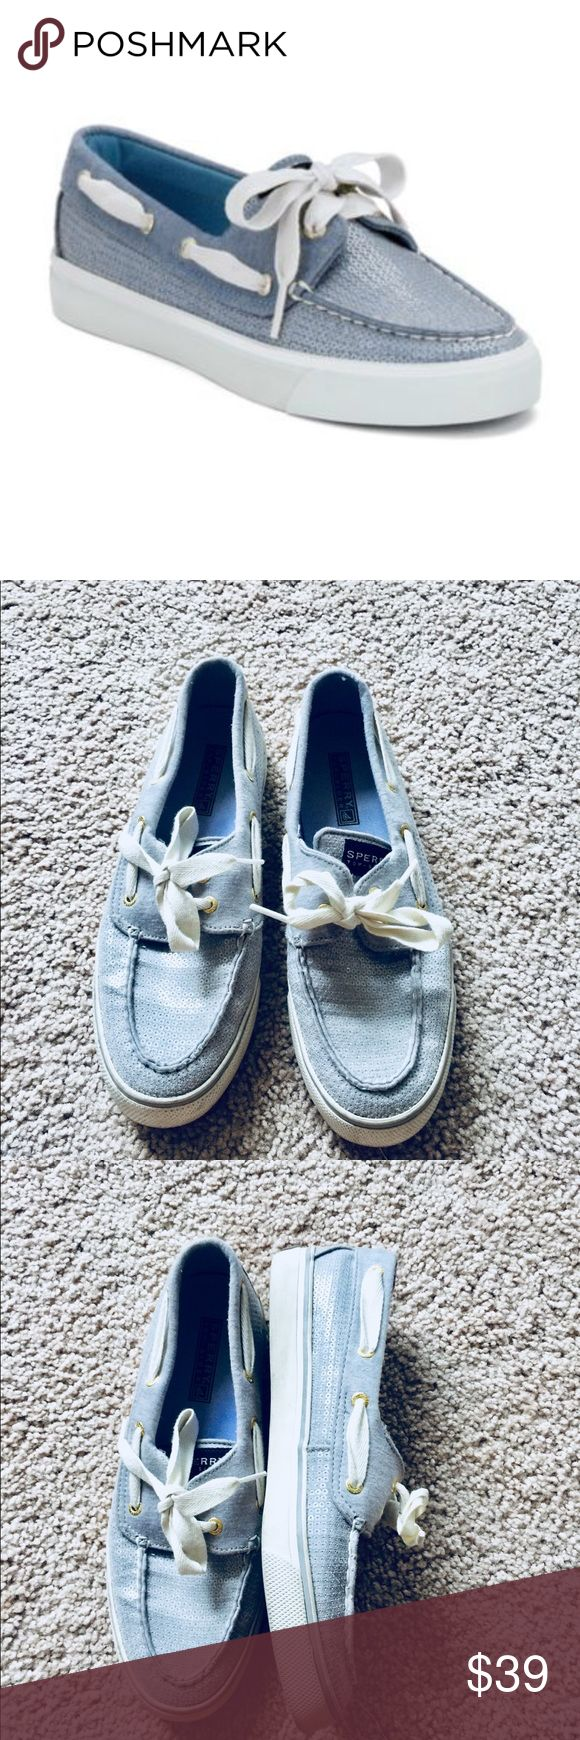 ❗️Sperry Sky Blue Sequin Boat Shoes MSRP $98! ❗️Sherry Sky Blue Sequins Boat Shoes. Size 7.5. Retails $98. In great condition. Feel free to make an offer! Selling to the first good offer I receive. Discounts on bundles. Large Cleanout Sale!   ❤️Posh Ambassador  ❤️Over 8,000 Sales ❤️Fast Shipping Sperry Top-Sider Shoes Flats & Loafers